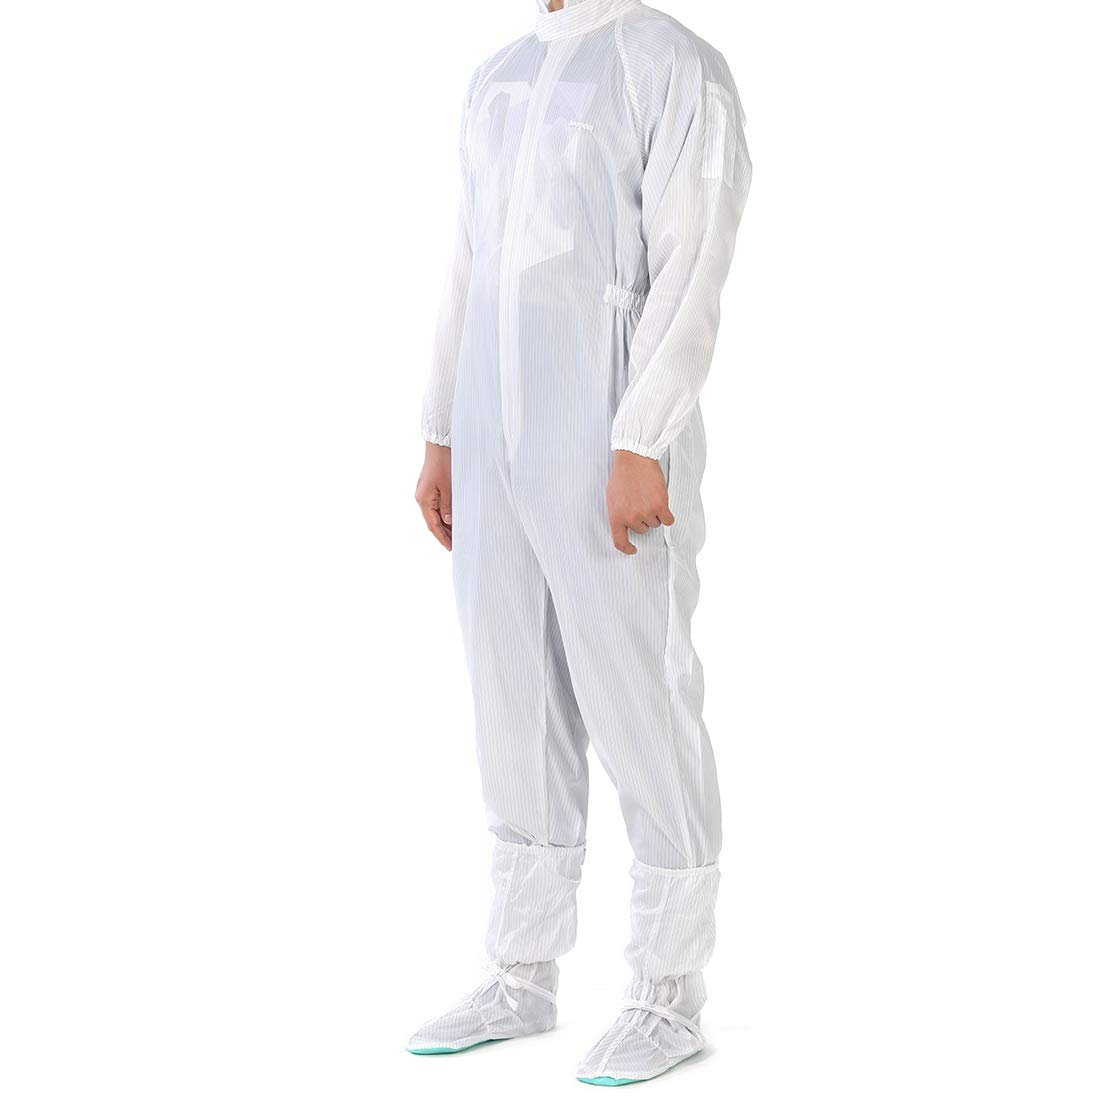 uxcell Dust Proof Anti-Static Jumpsuit Protection Coveralls L-Size White with Sole by uxcell